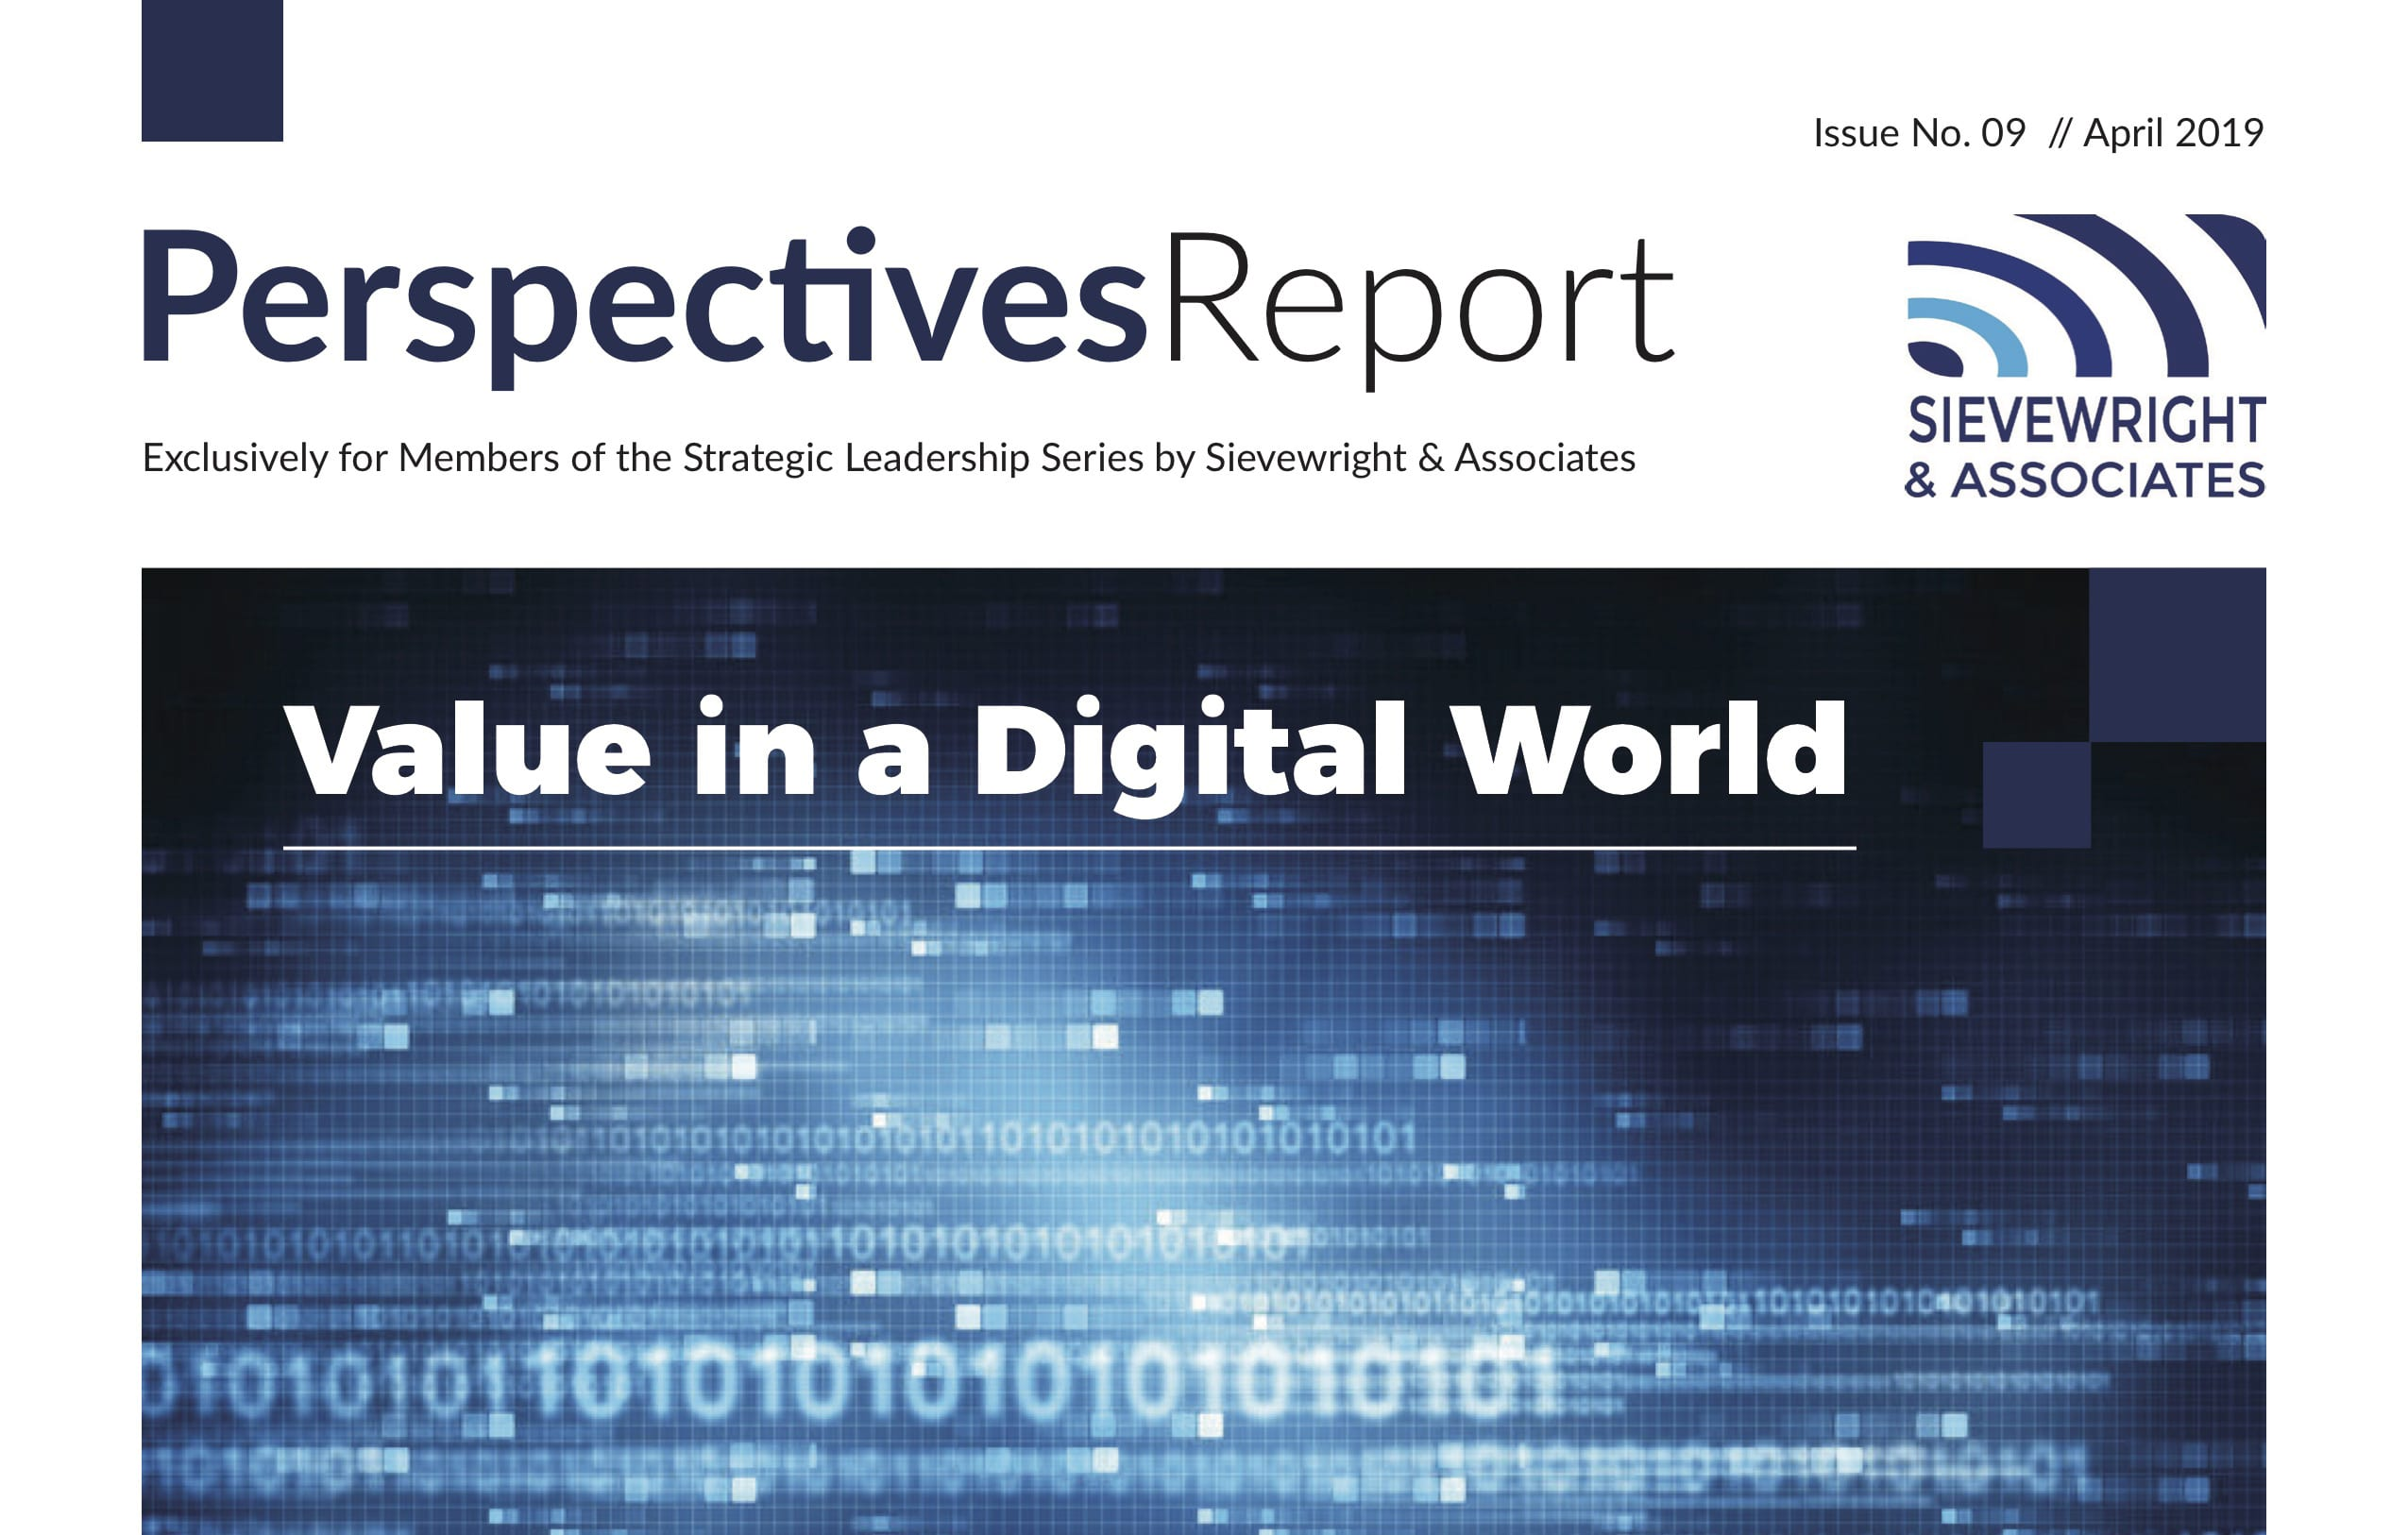 Perspectives Report Cover Image April 2019